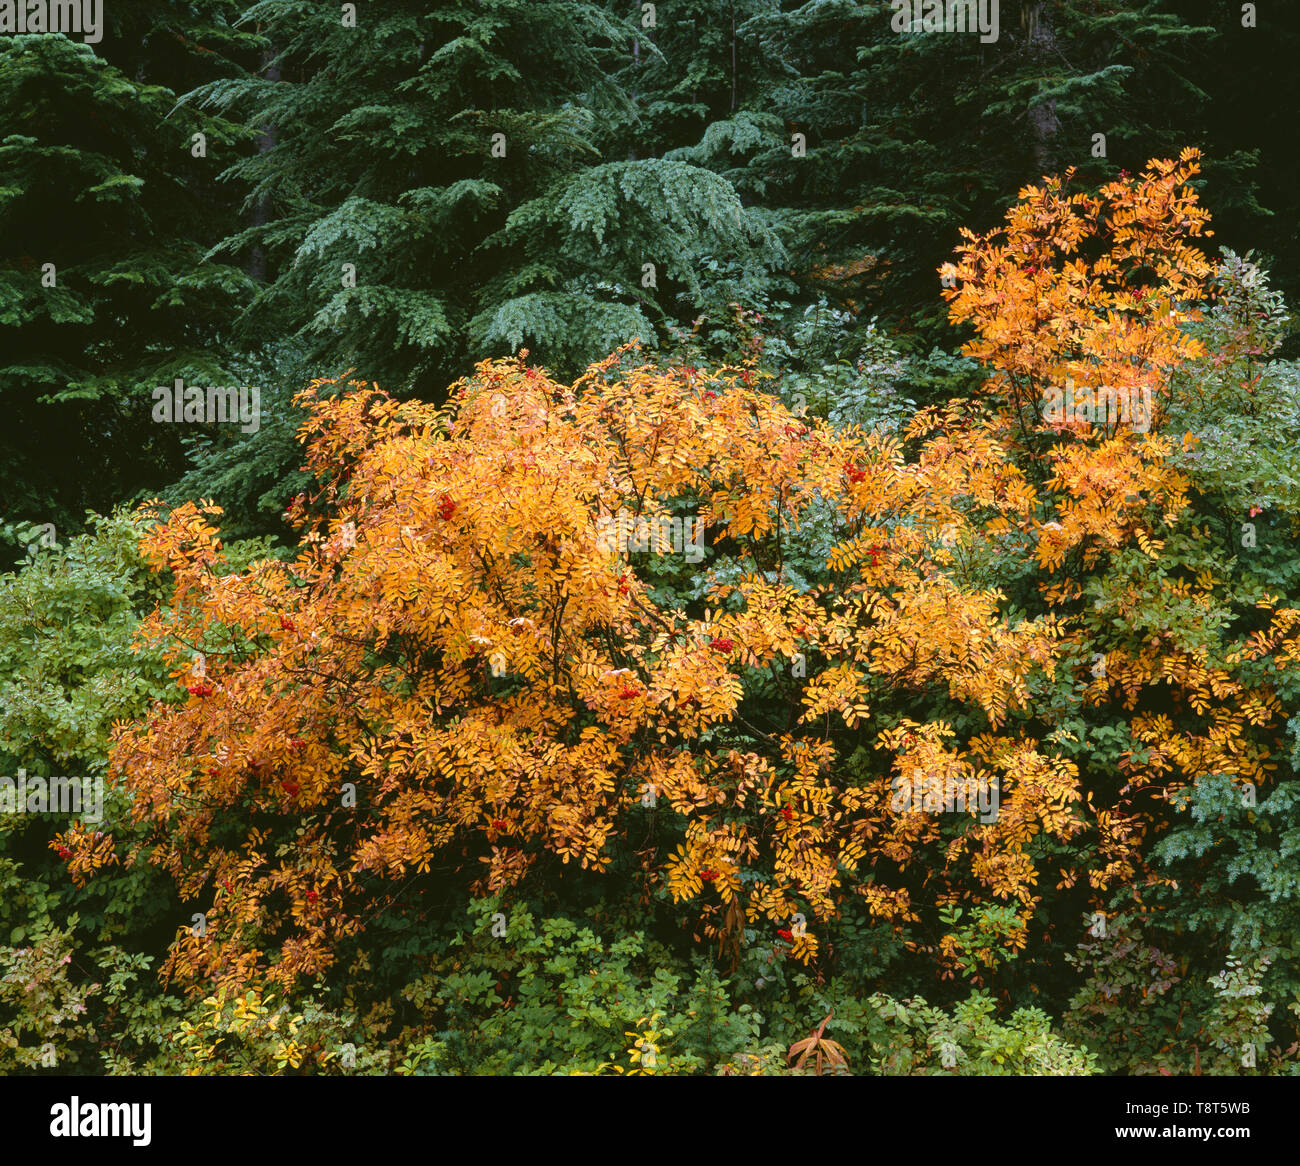 USA, Washington, Mt. Baker Snoqualmie National Forest, Fall colors of mountain ash contrasts with evergreen firs; Tonga Ridge Road. - Stock Image